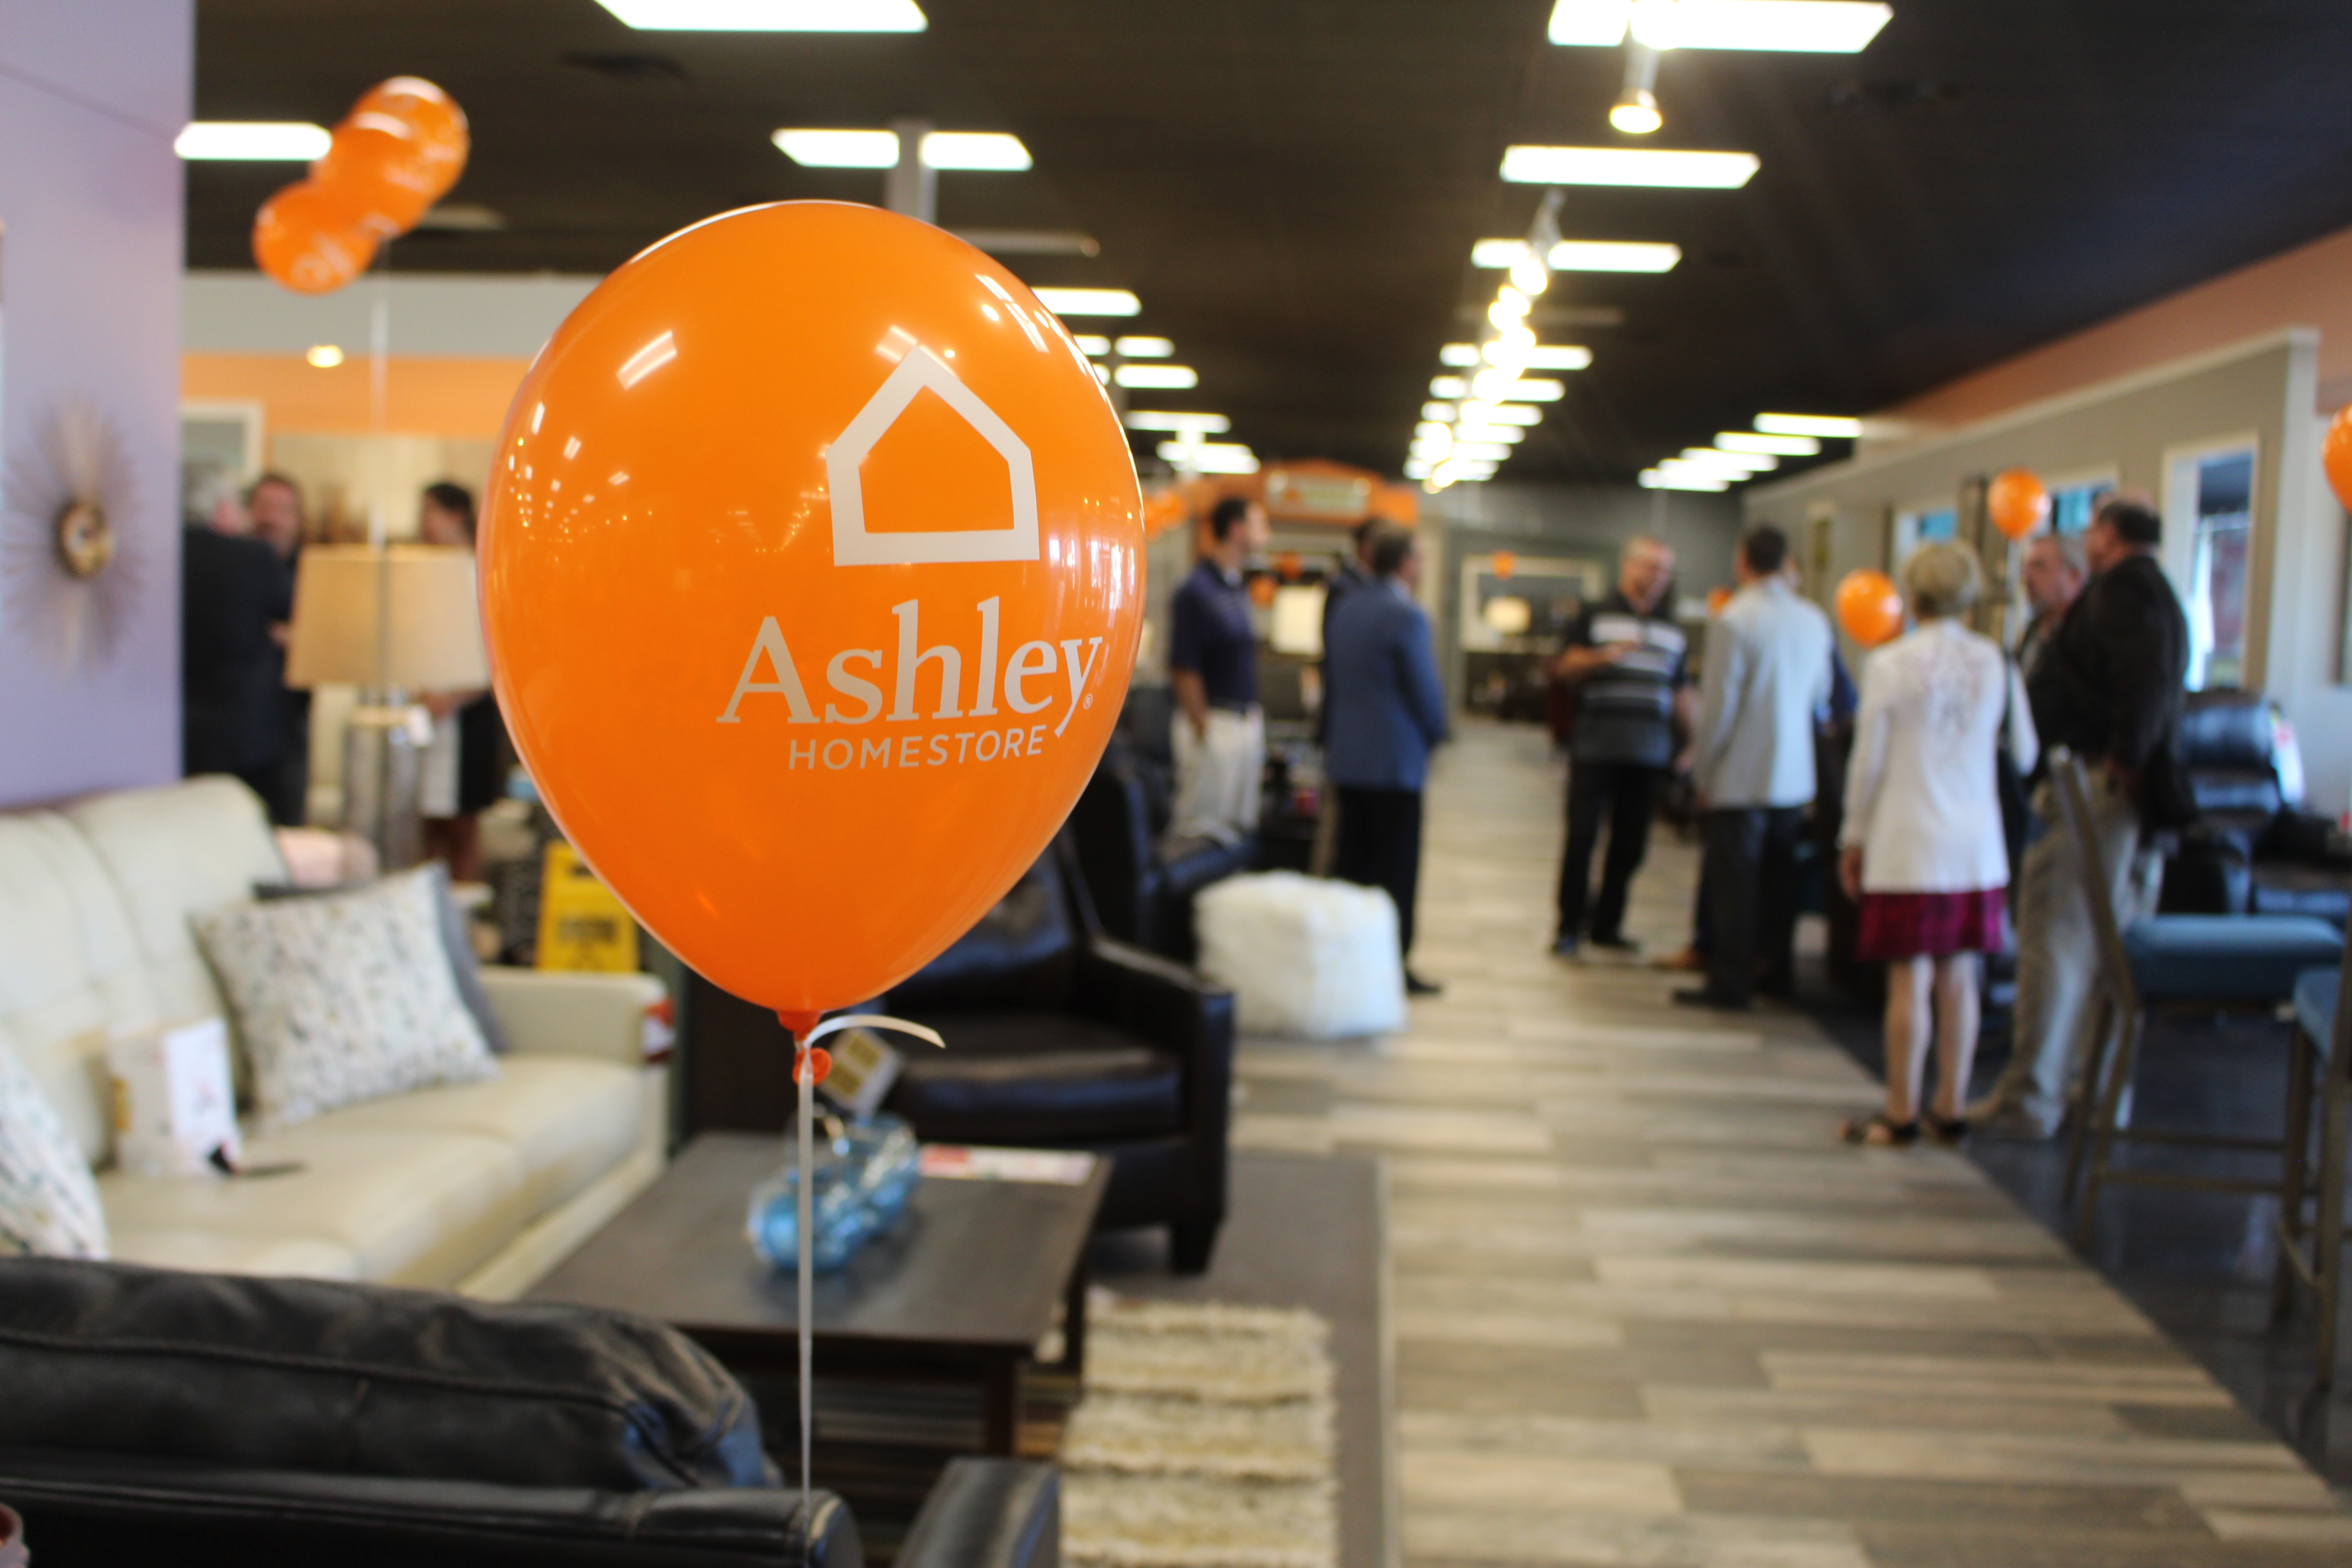 The McQueenu0027s Furniture Store Recently Underwent A Makeover And On Aug. 16,  Ashley Furniture